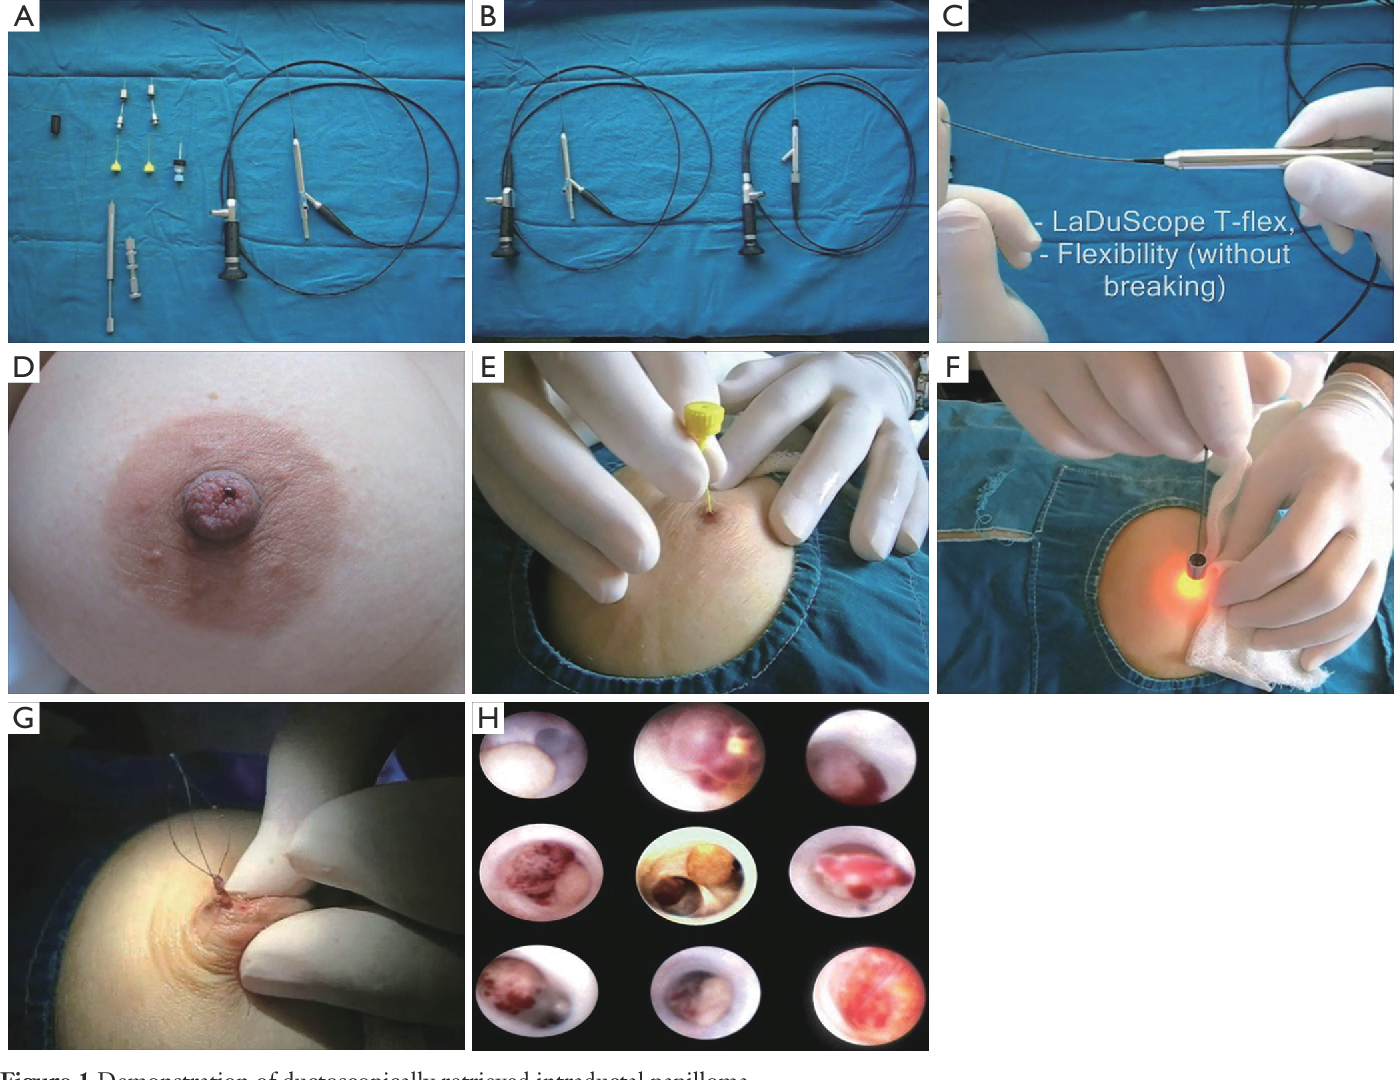 treatment of papilloma in breast